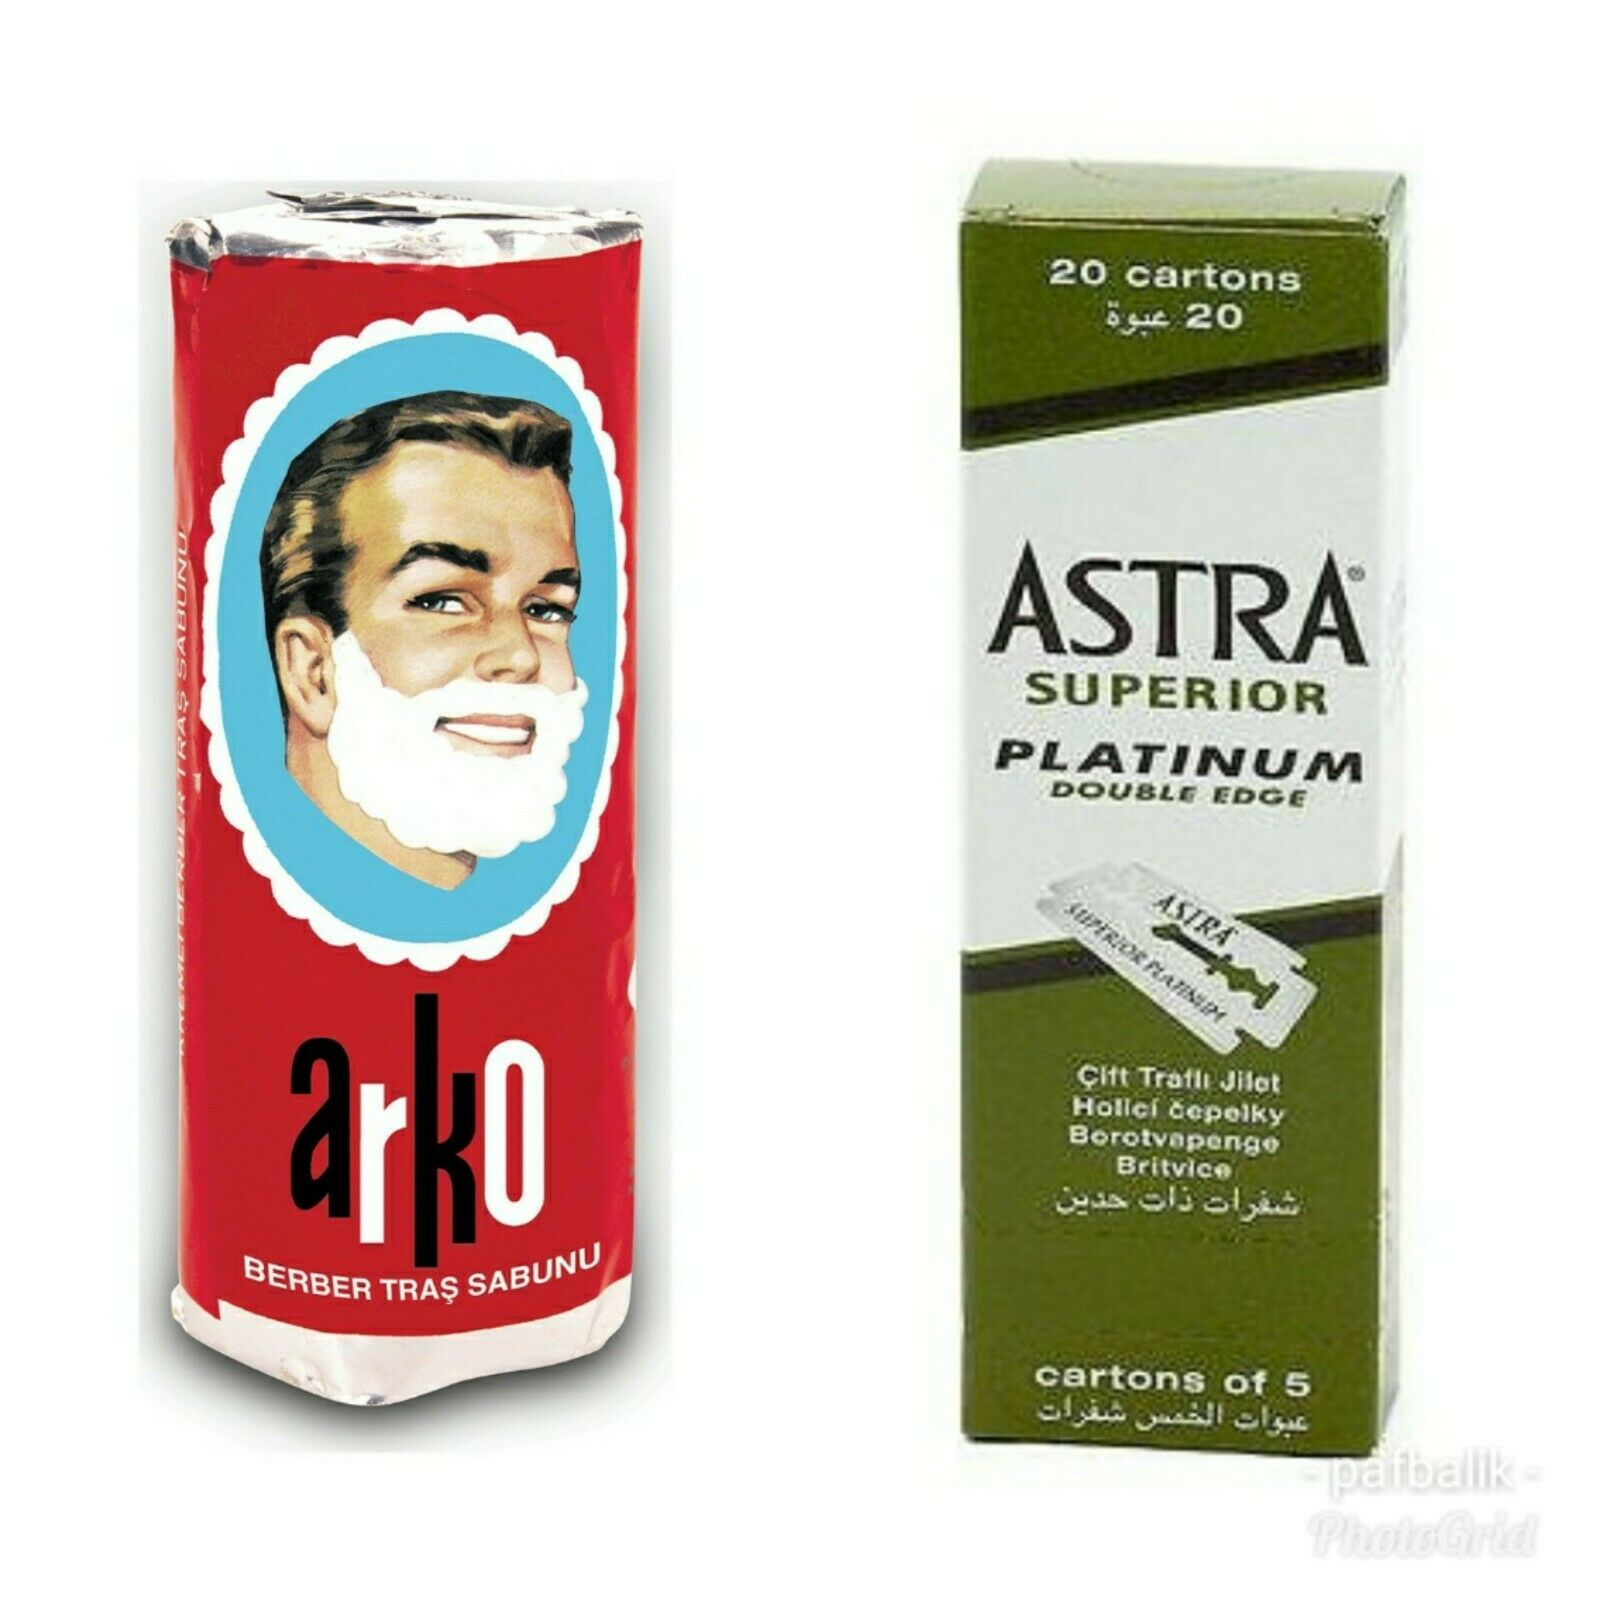 100 Astra Superior Platinum Double Edge Side Razor Blades + Arko Shaving Soap